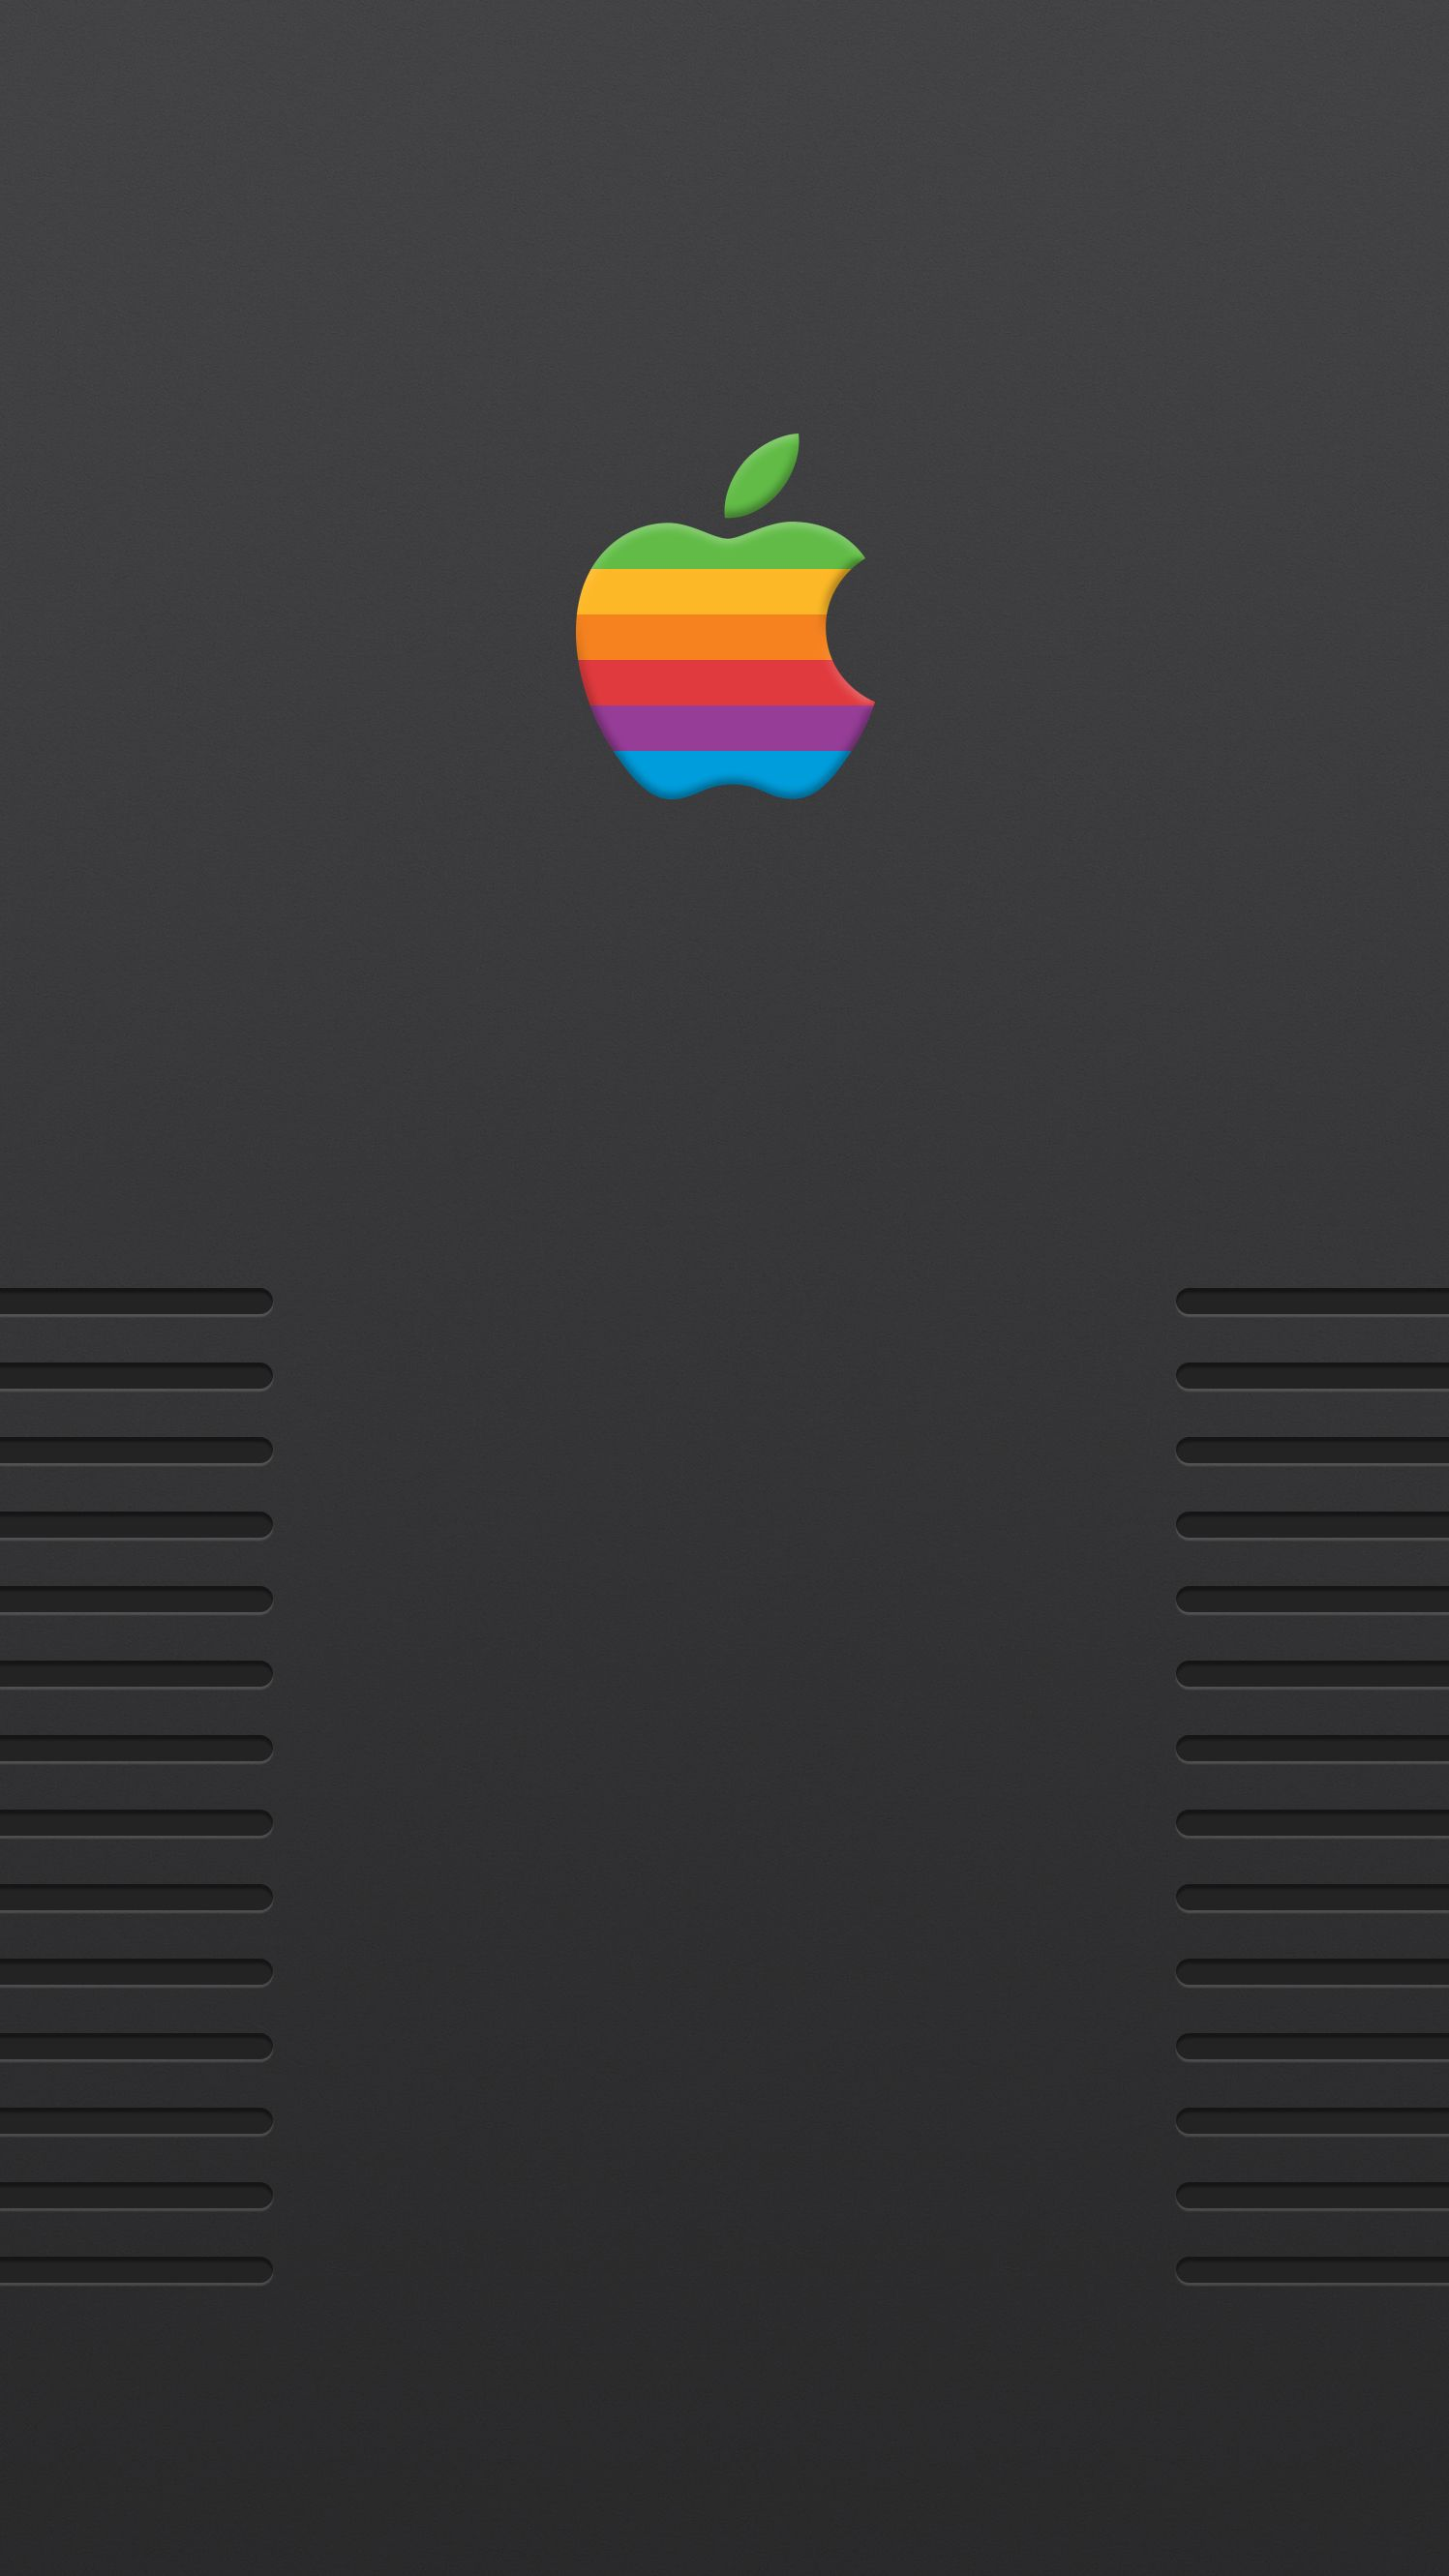 iPhone Retro Apple Wallpaper Bing images Retro